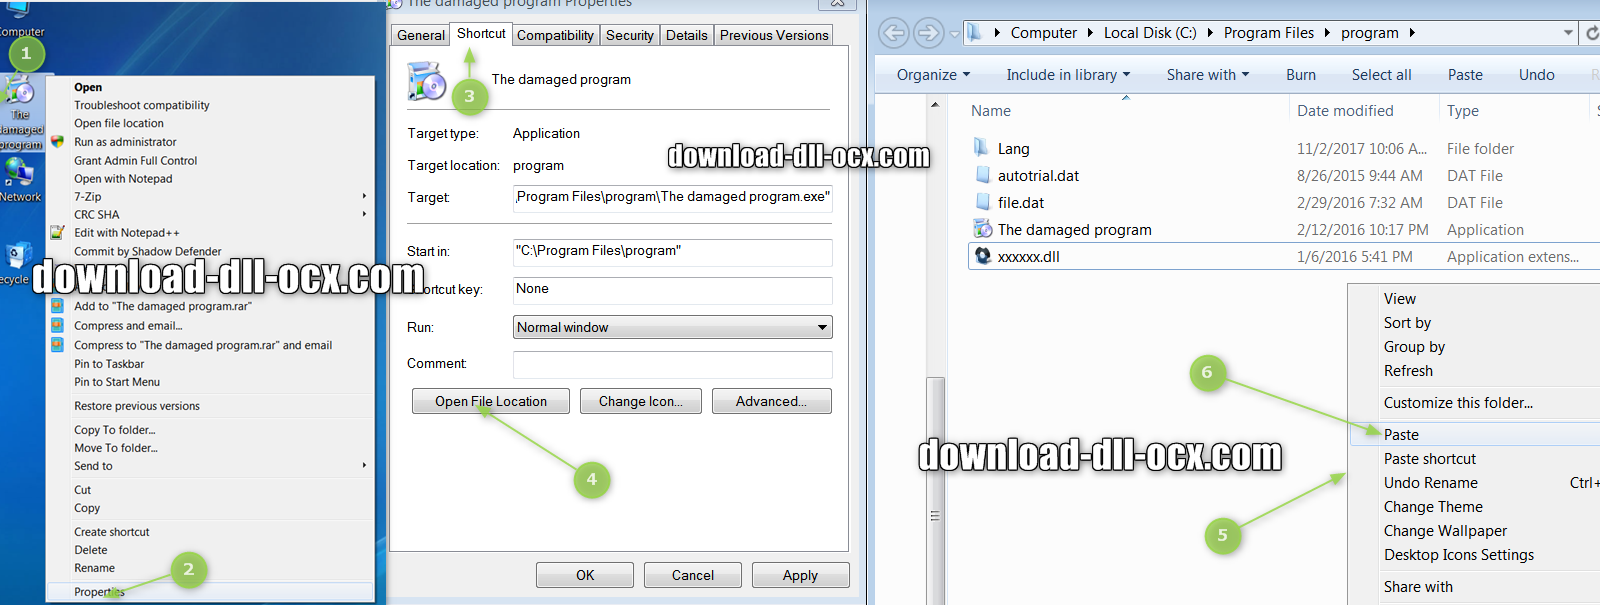 how to install Cygpixbufloader-tga.dll file? for fix missing